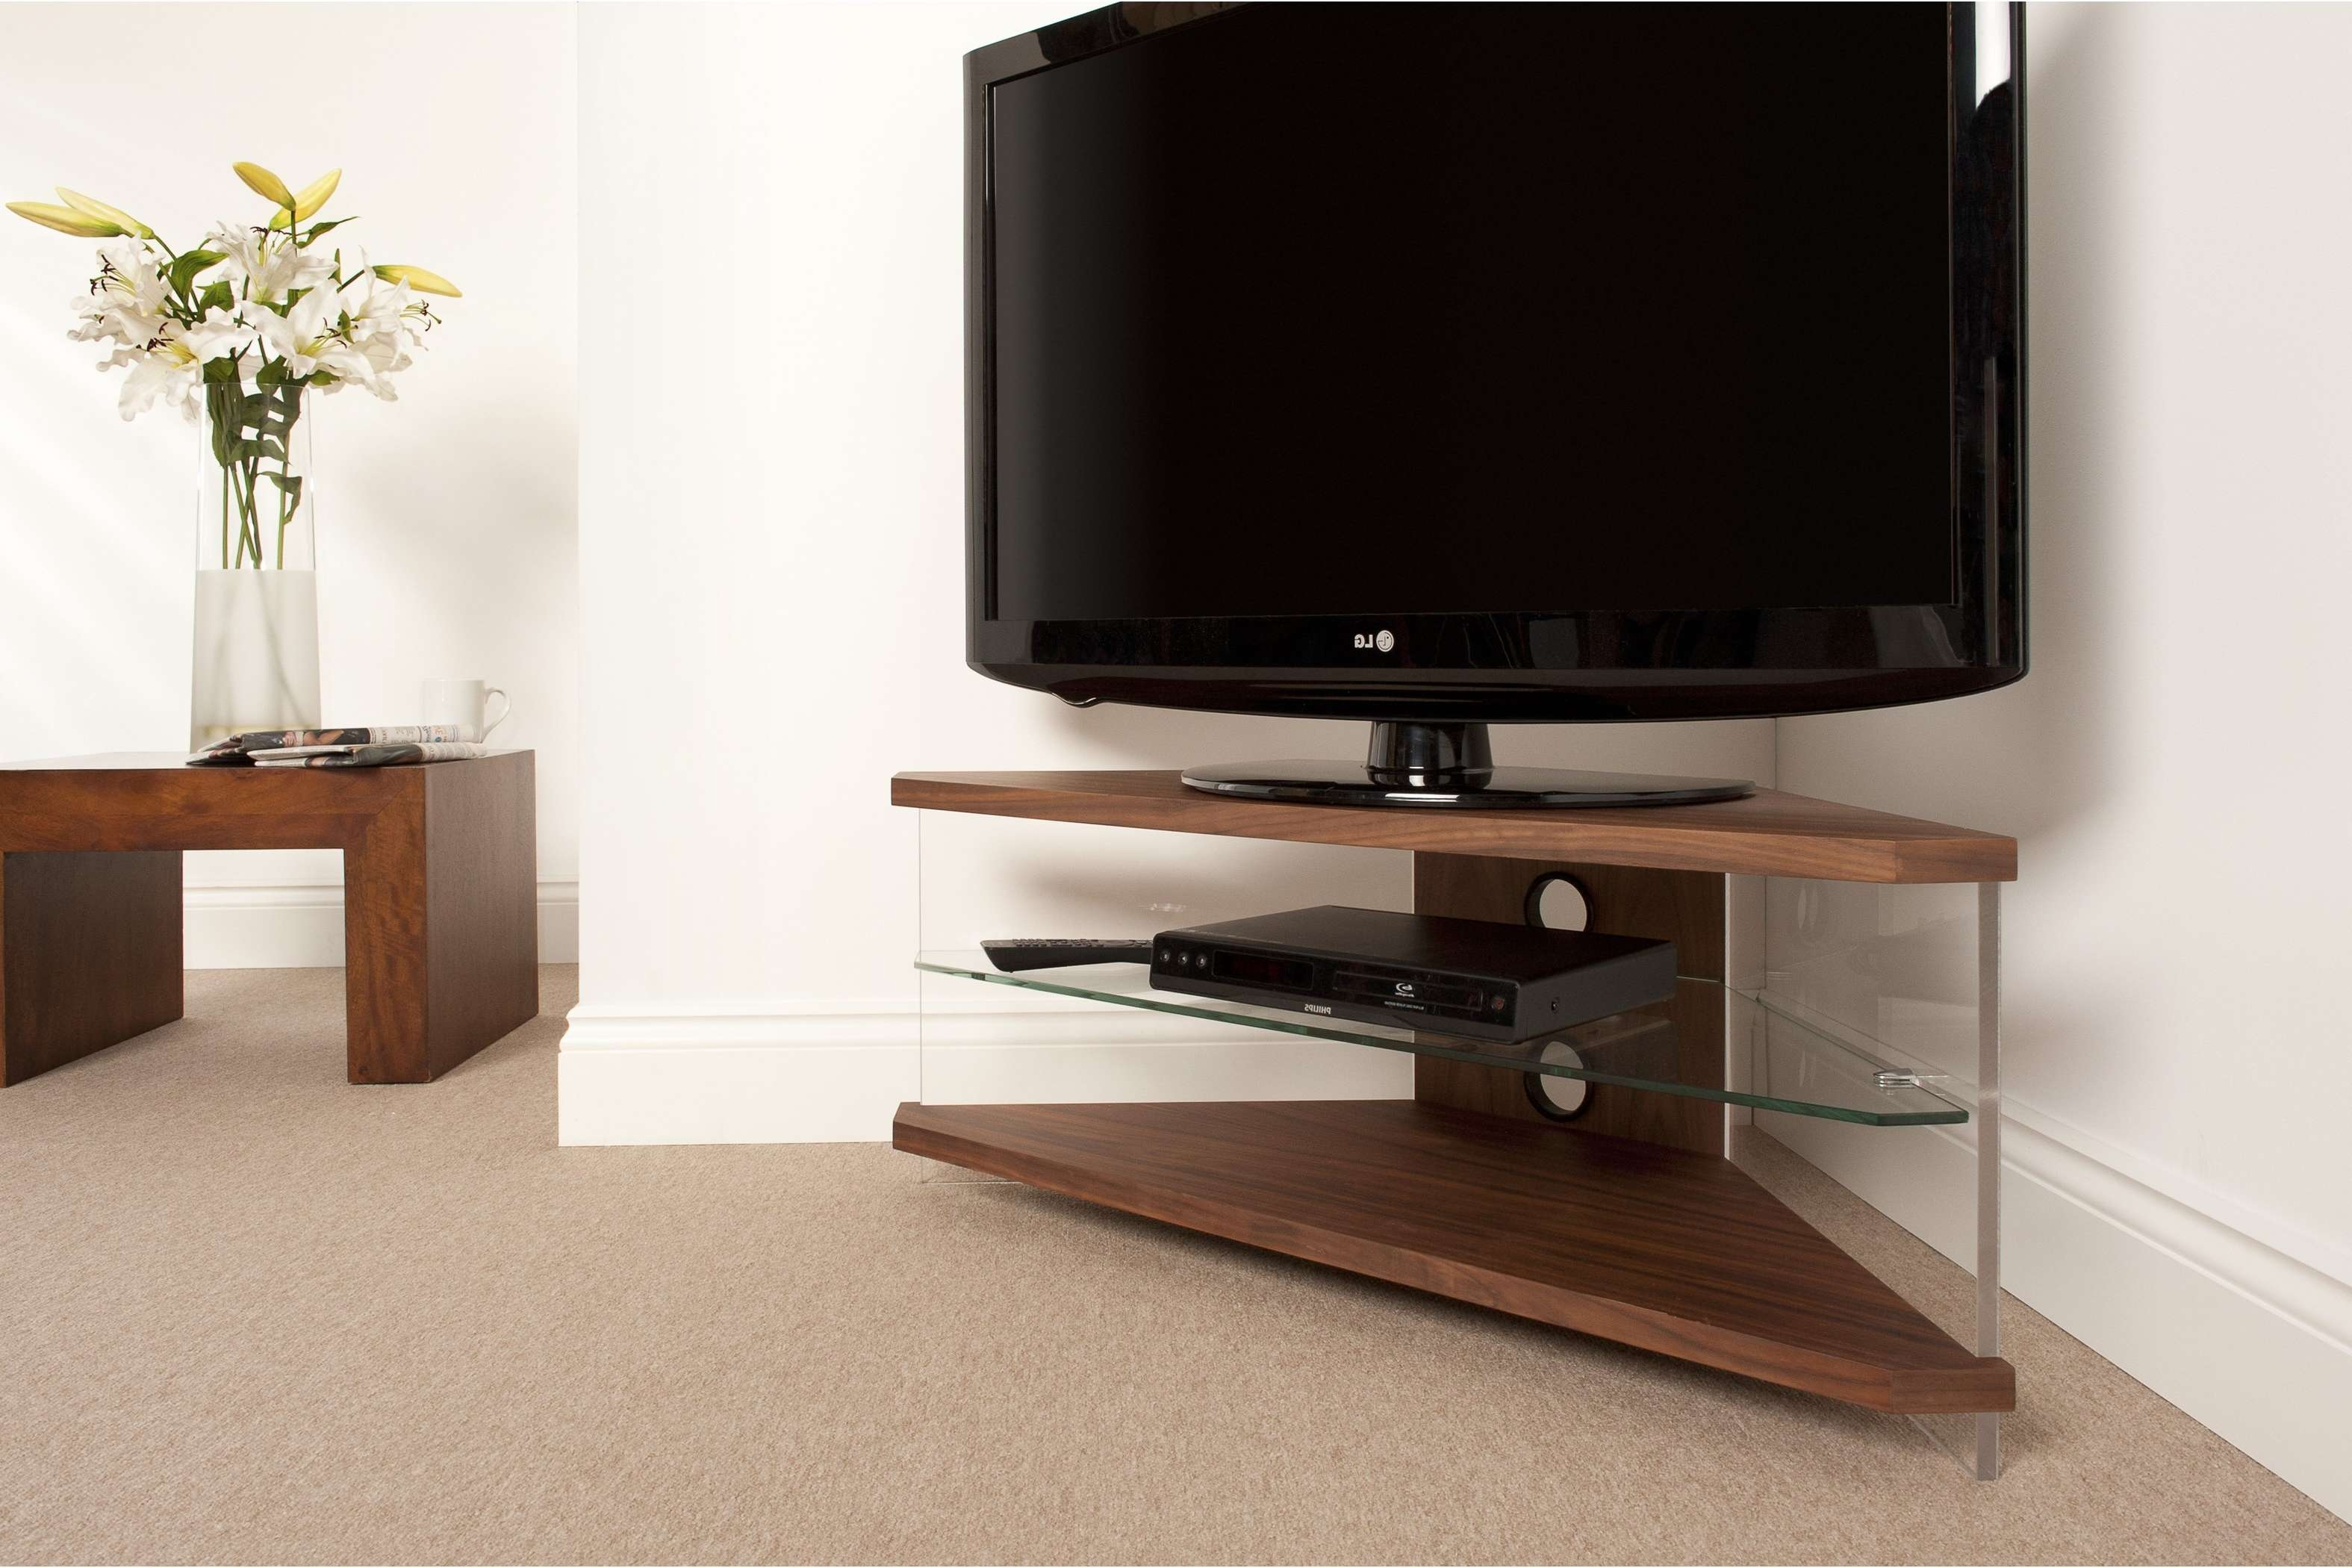 Appalling Glass Furniture Tv Stand Small Room Storage On Glass Throughout Tv Stands For Small Rooms (View 1 of 15)